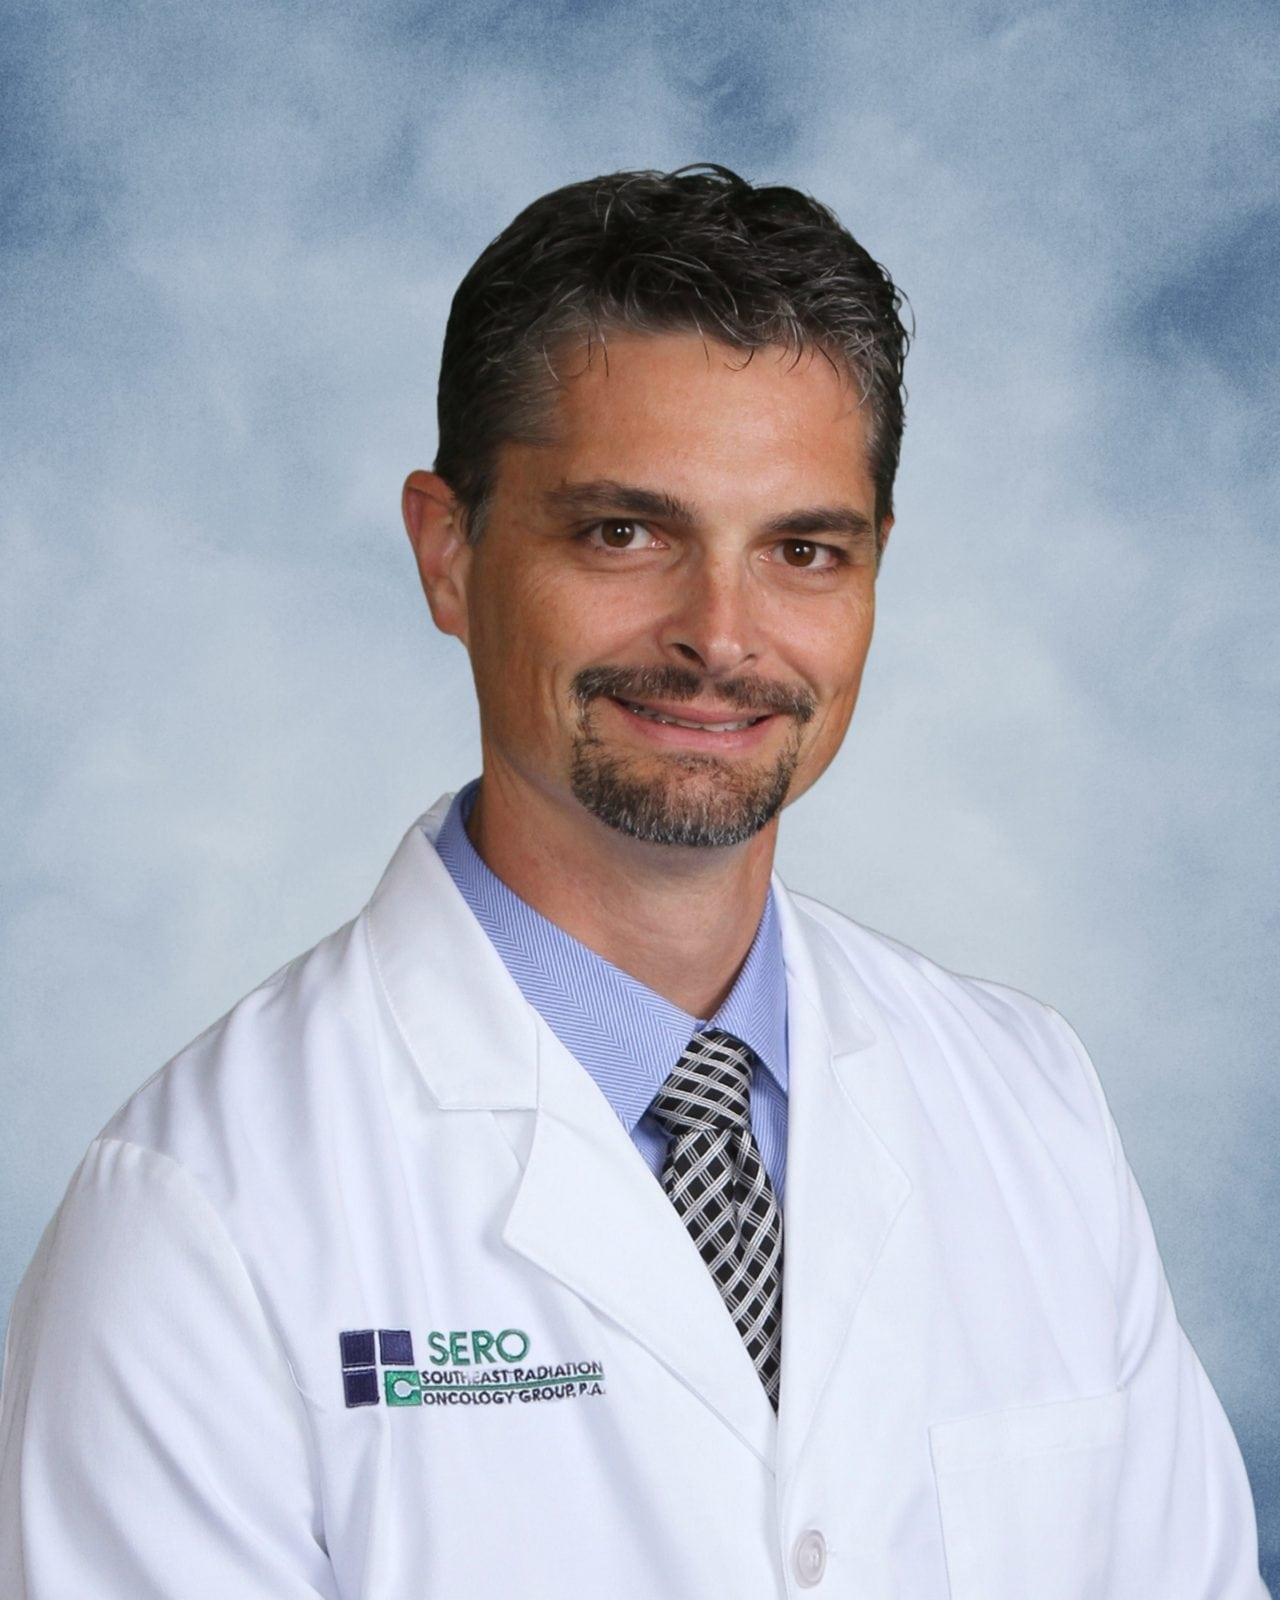 William E Bobo Md Southeast Radiation Oncology Group